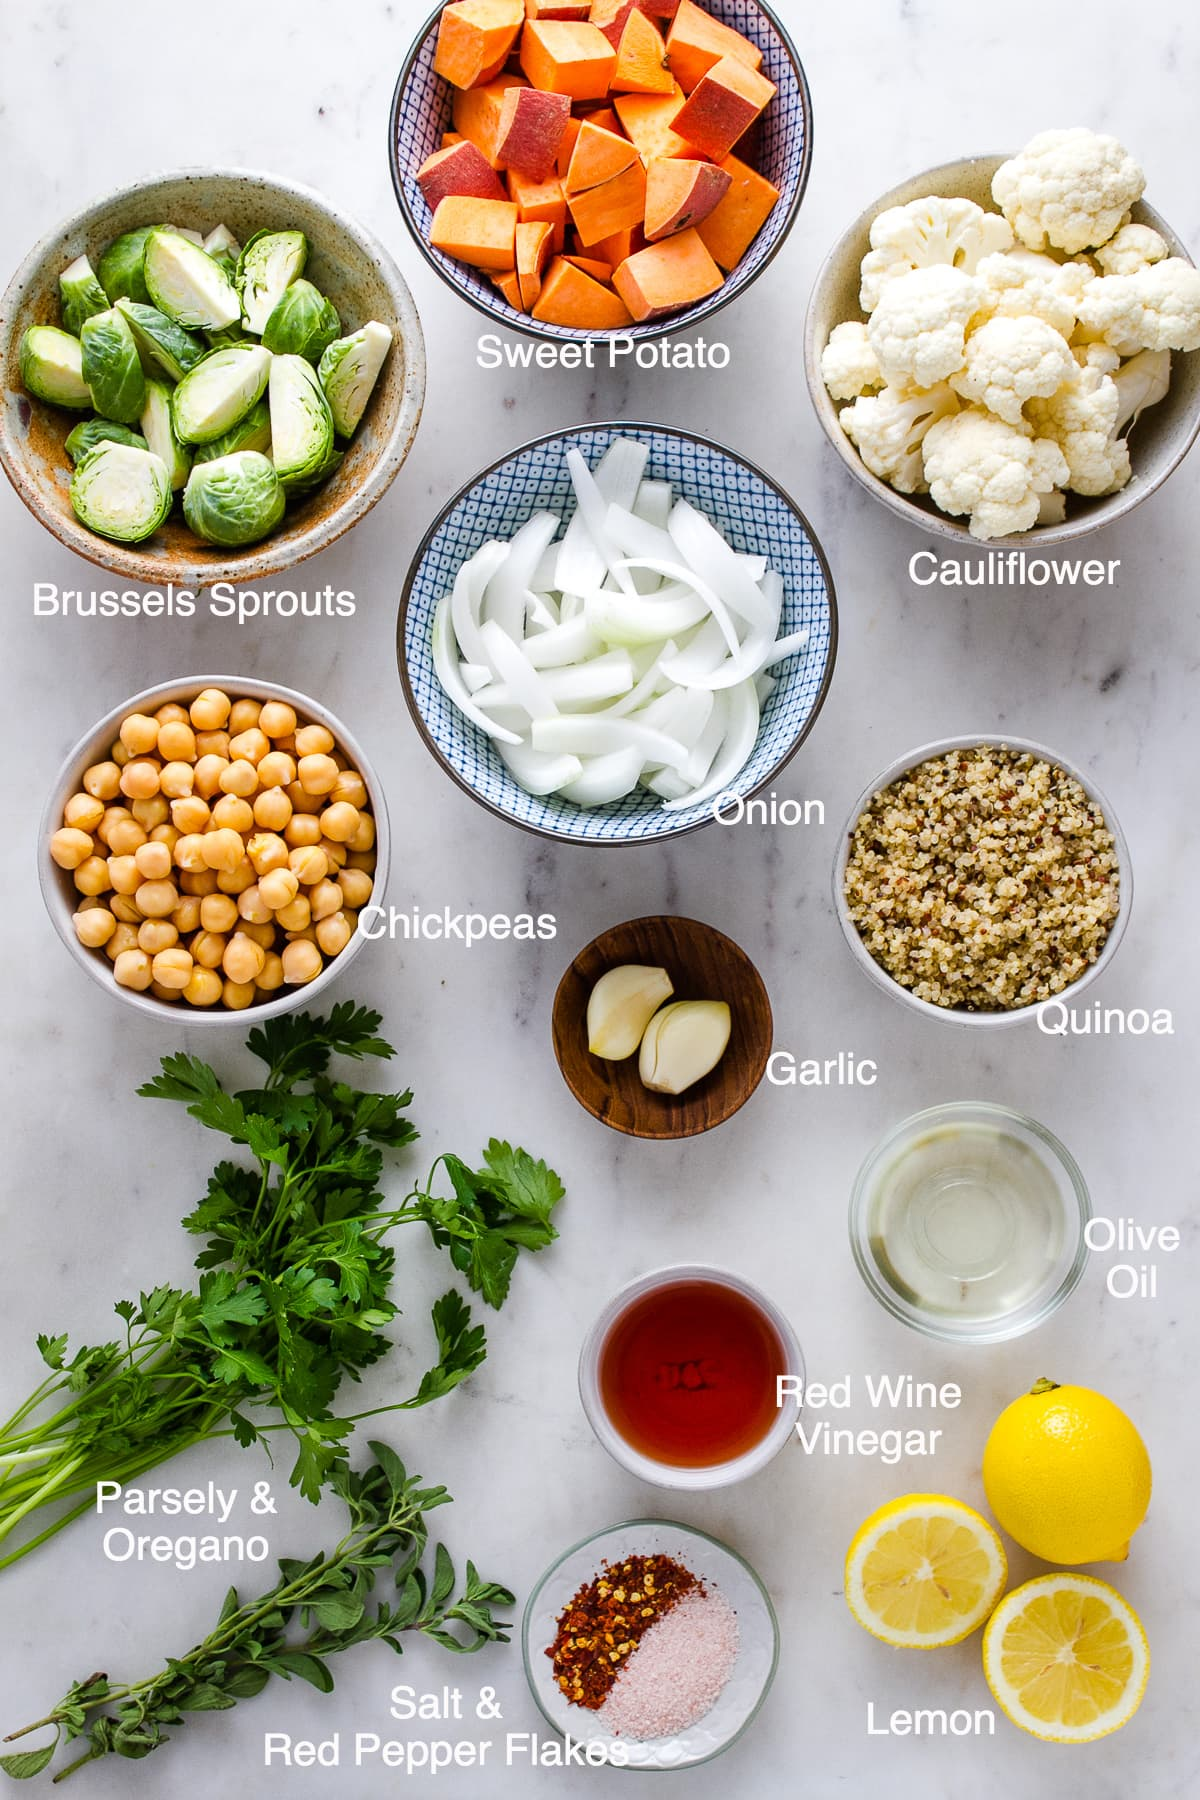 top down view of ingredients used to make chimichurri nourish bowl.